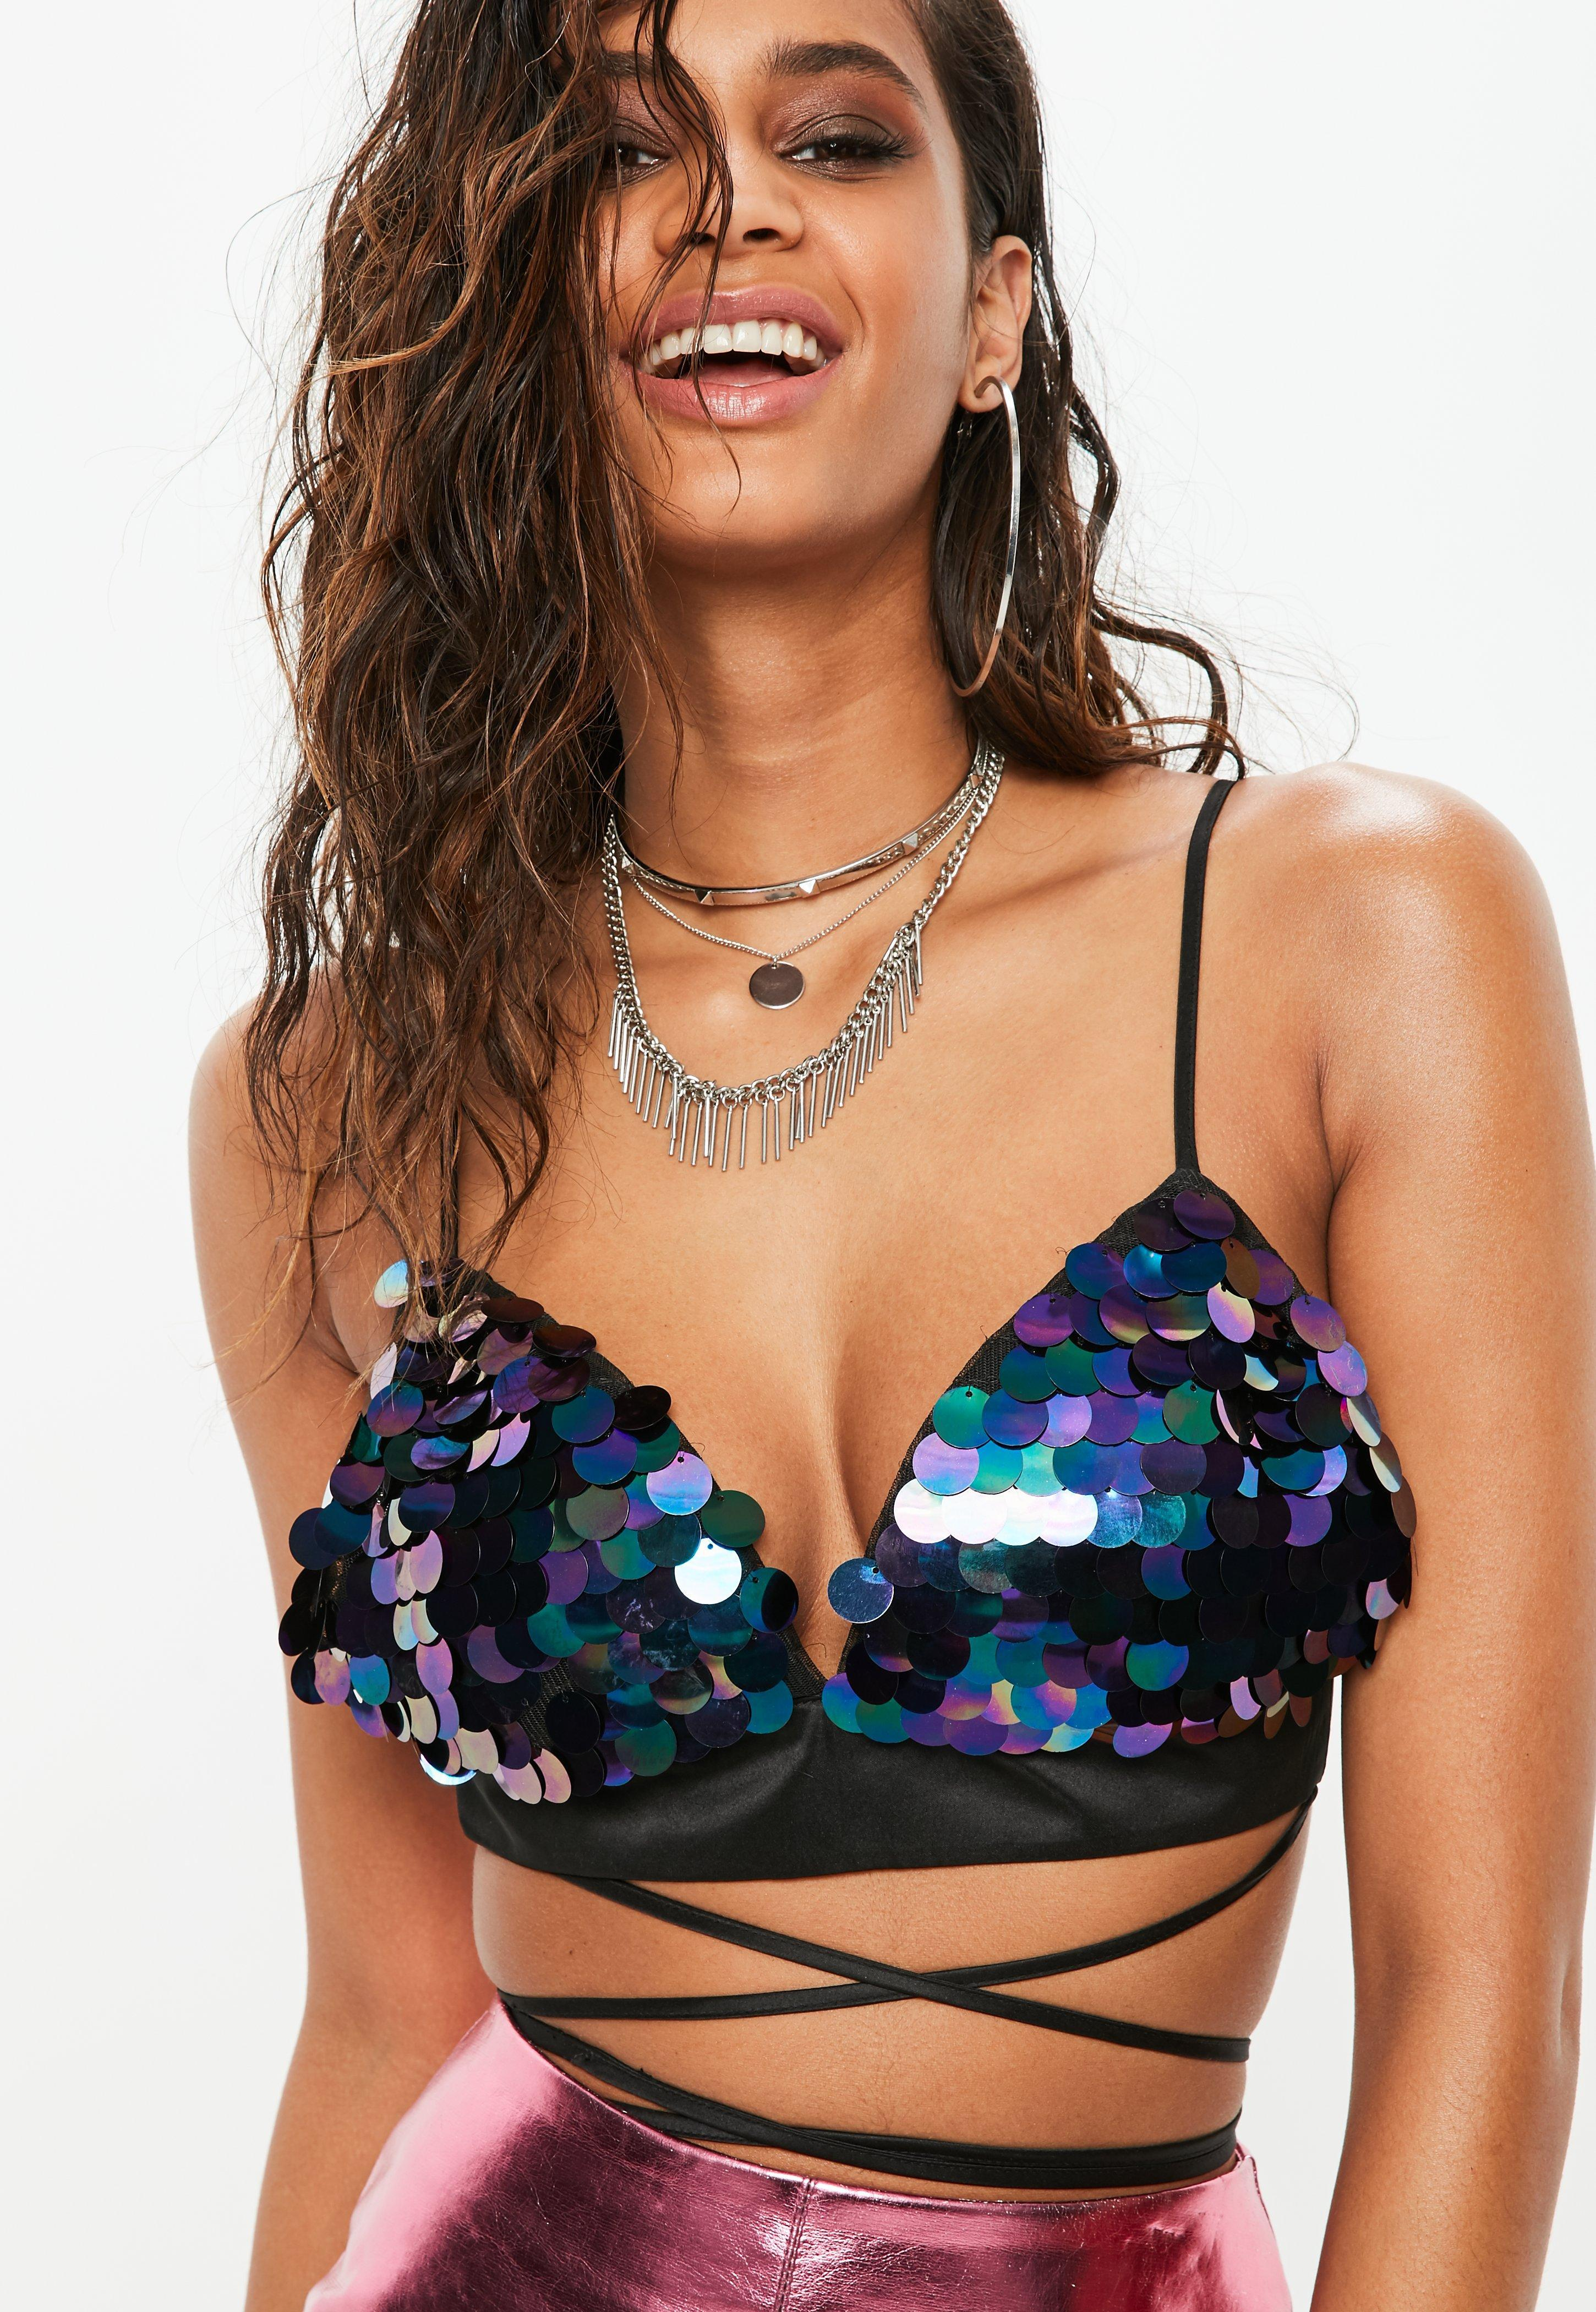 d31b99bfb51 Lyst - Missguided Black Iridescent Sequin Multi Wrap Bralet in Black